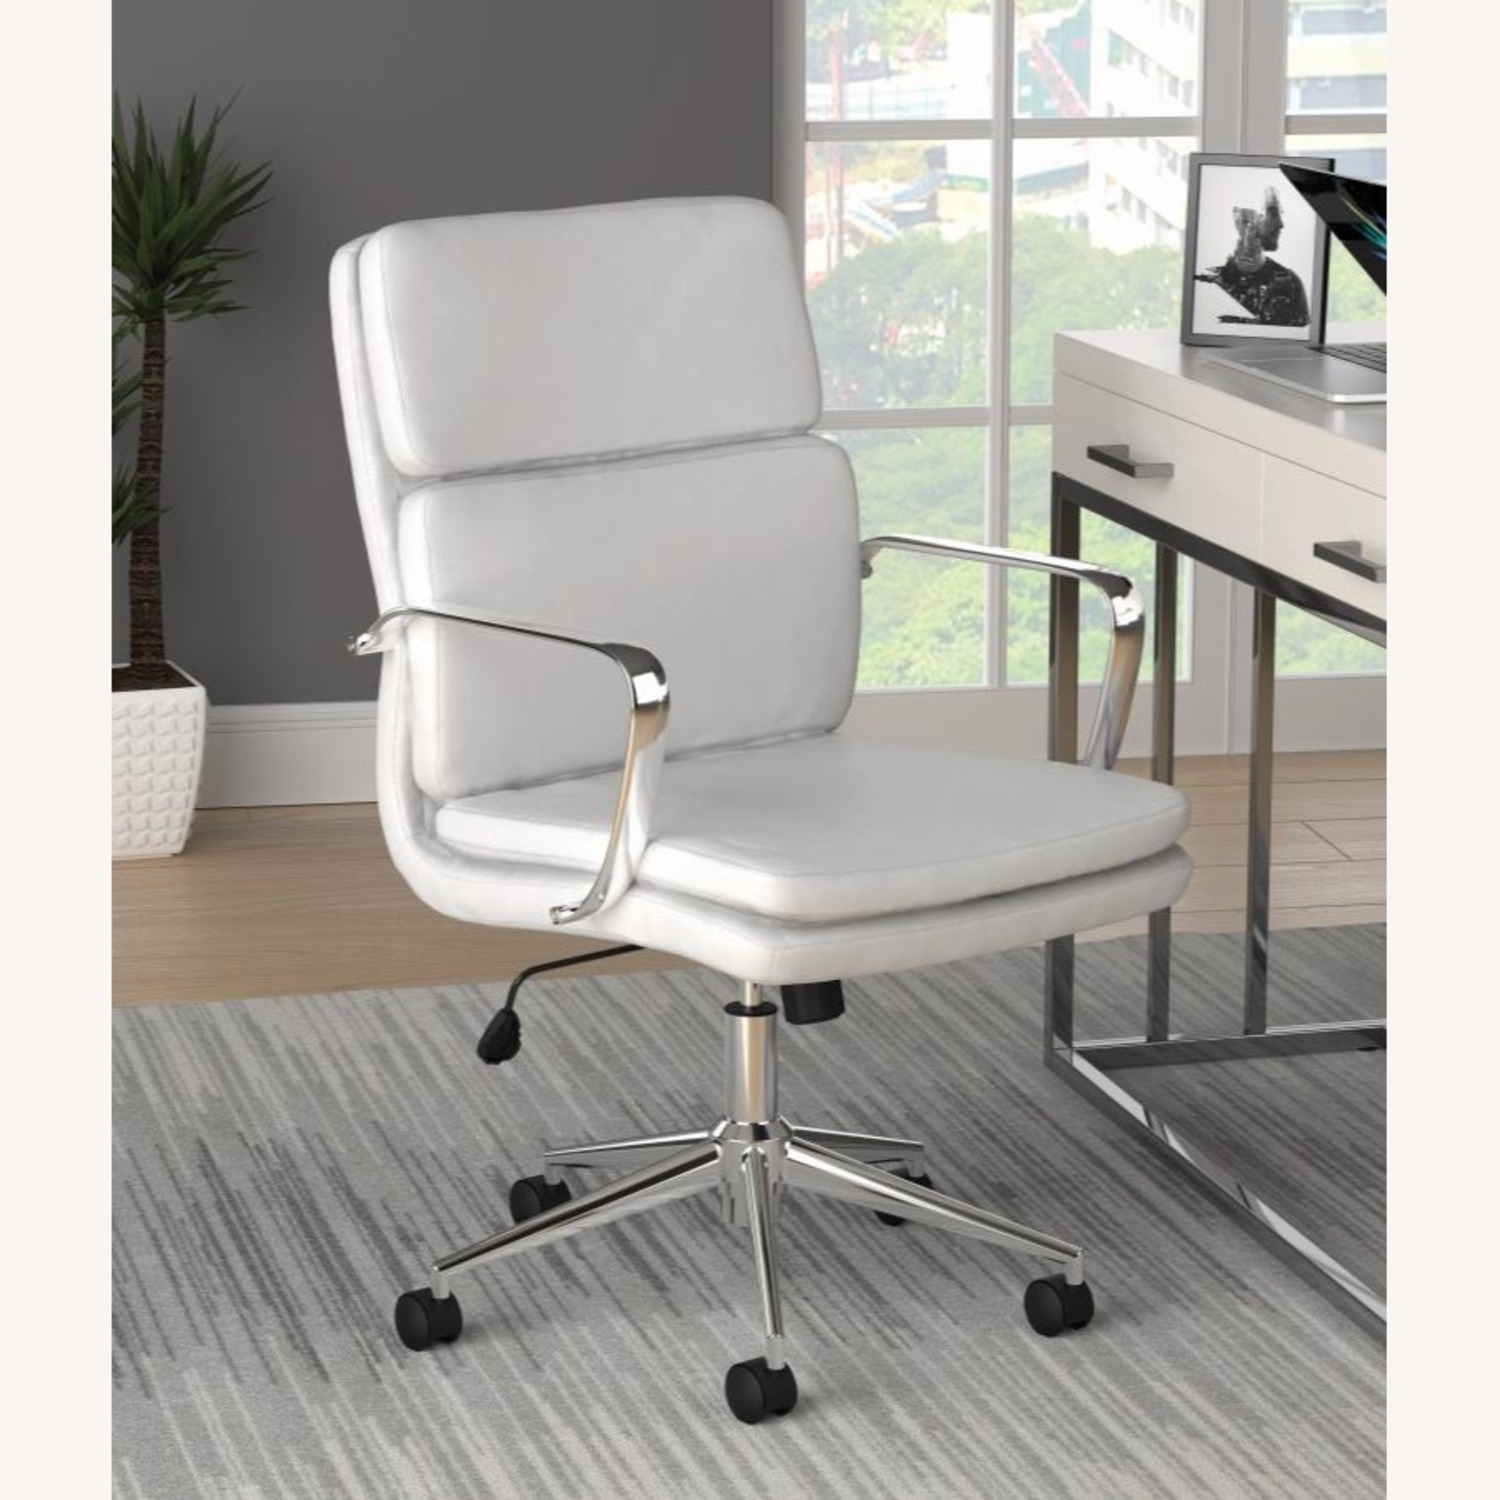 Office Chair In White Leatherette & Chrome Finish - image-7